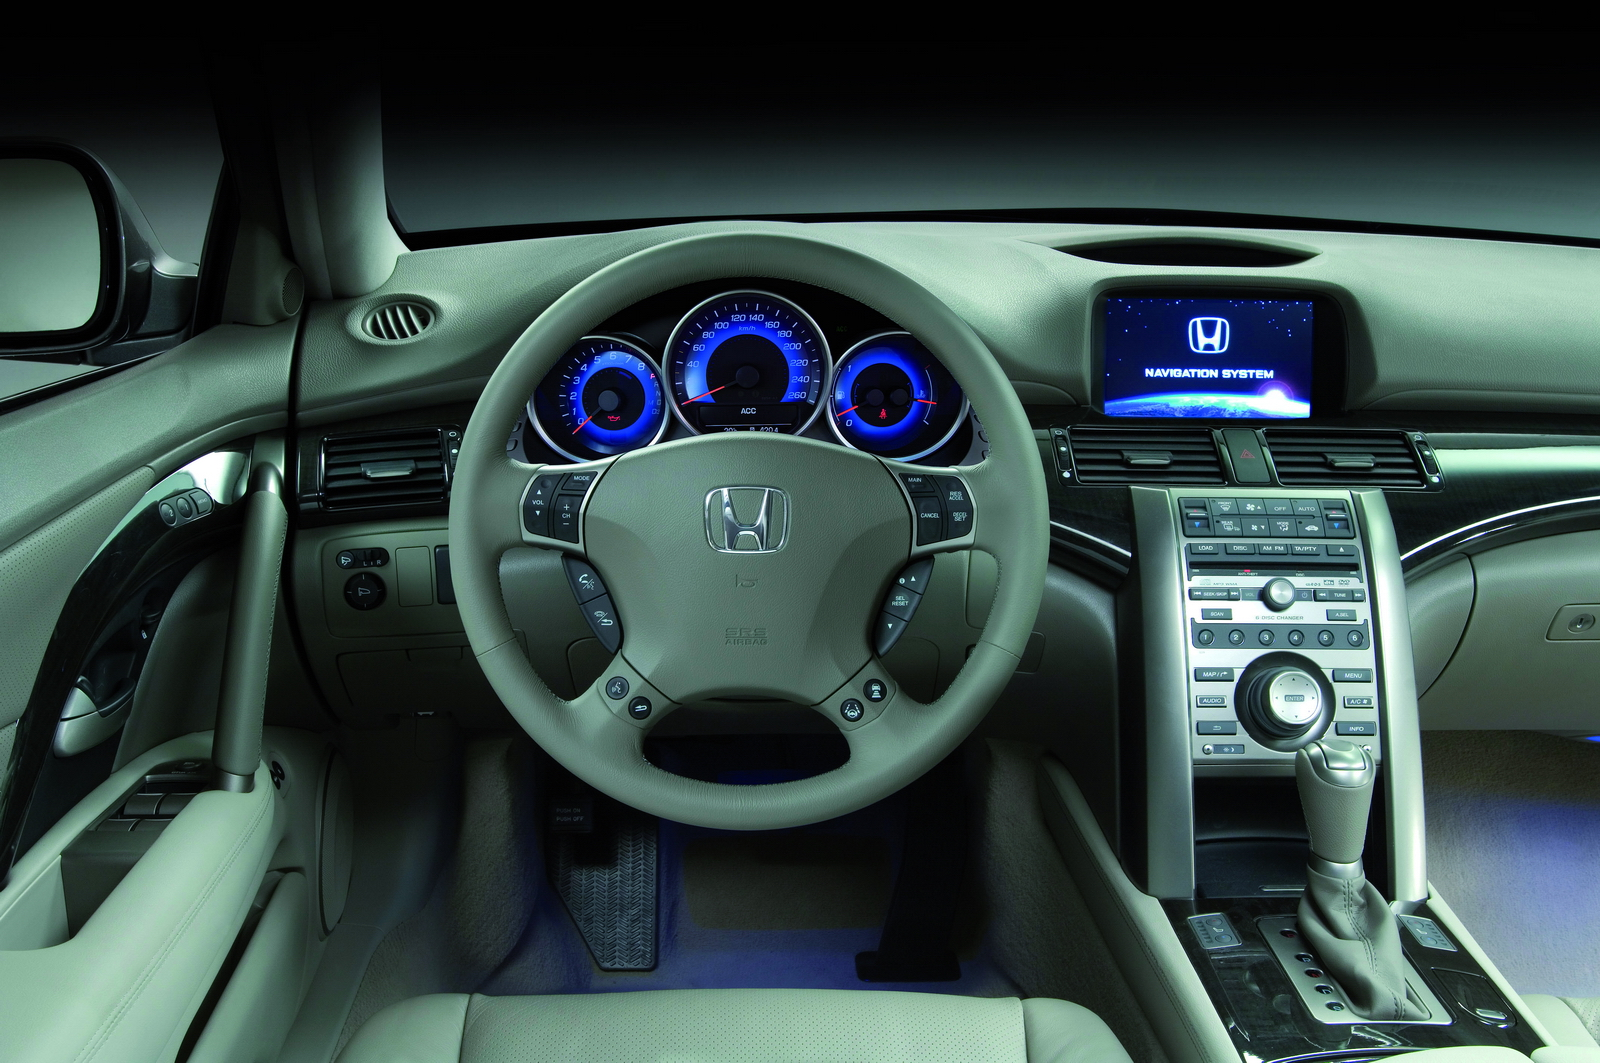 honda legend iv (kb1) 2010 models #9